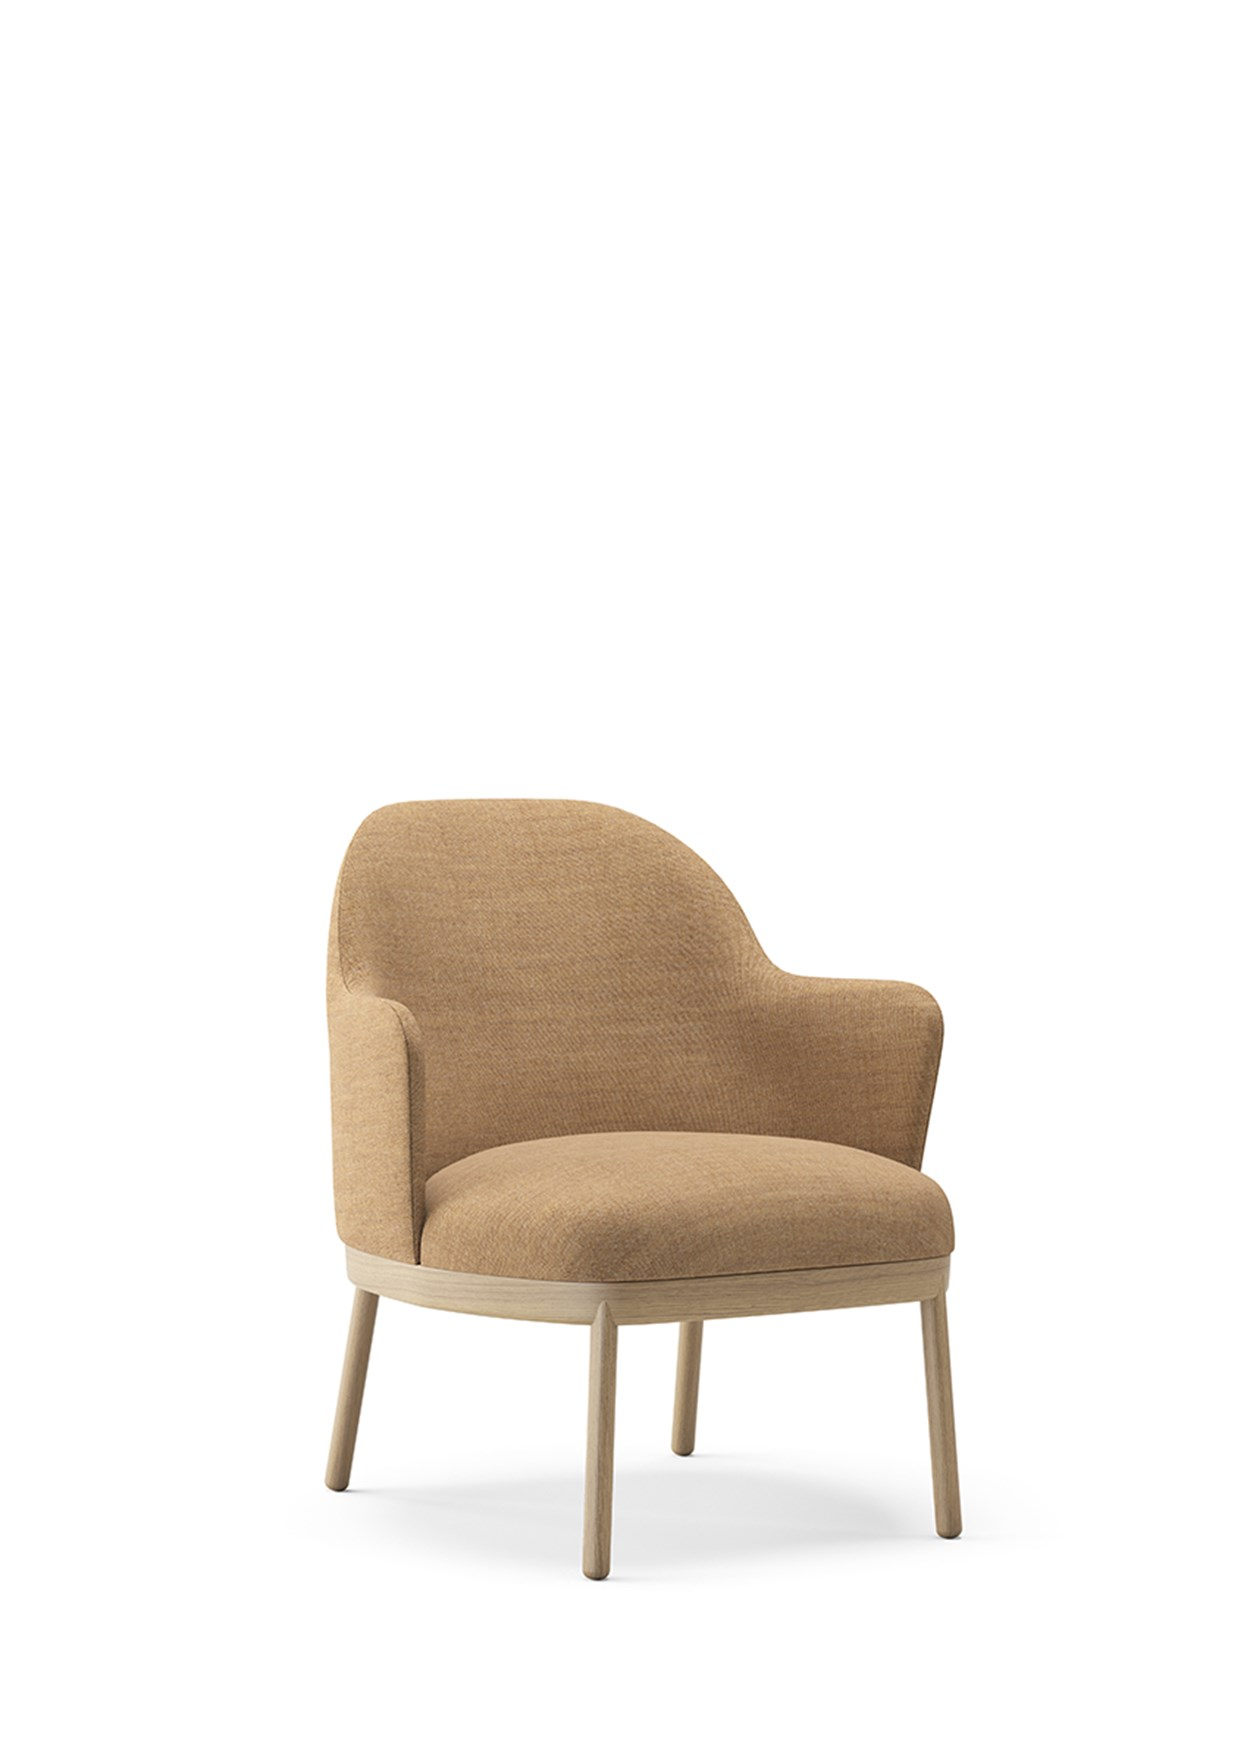 VICCARBE_ALETA Lounge Chair wooden base with arms (2).jpg